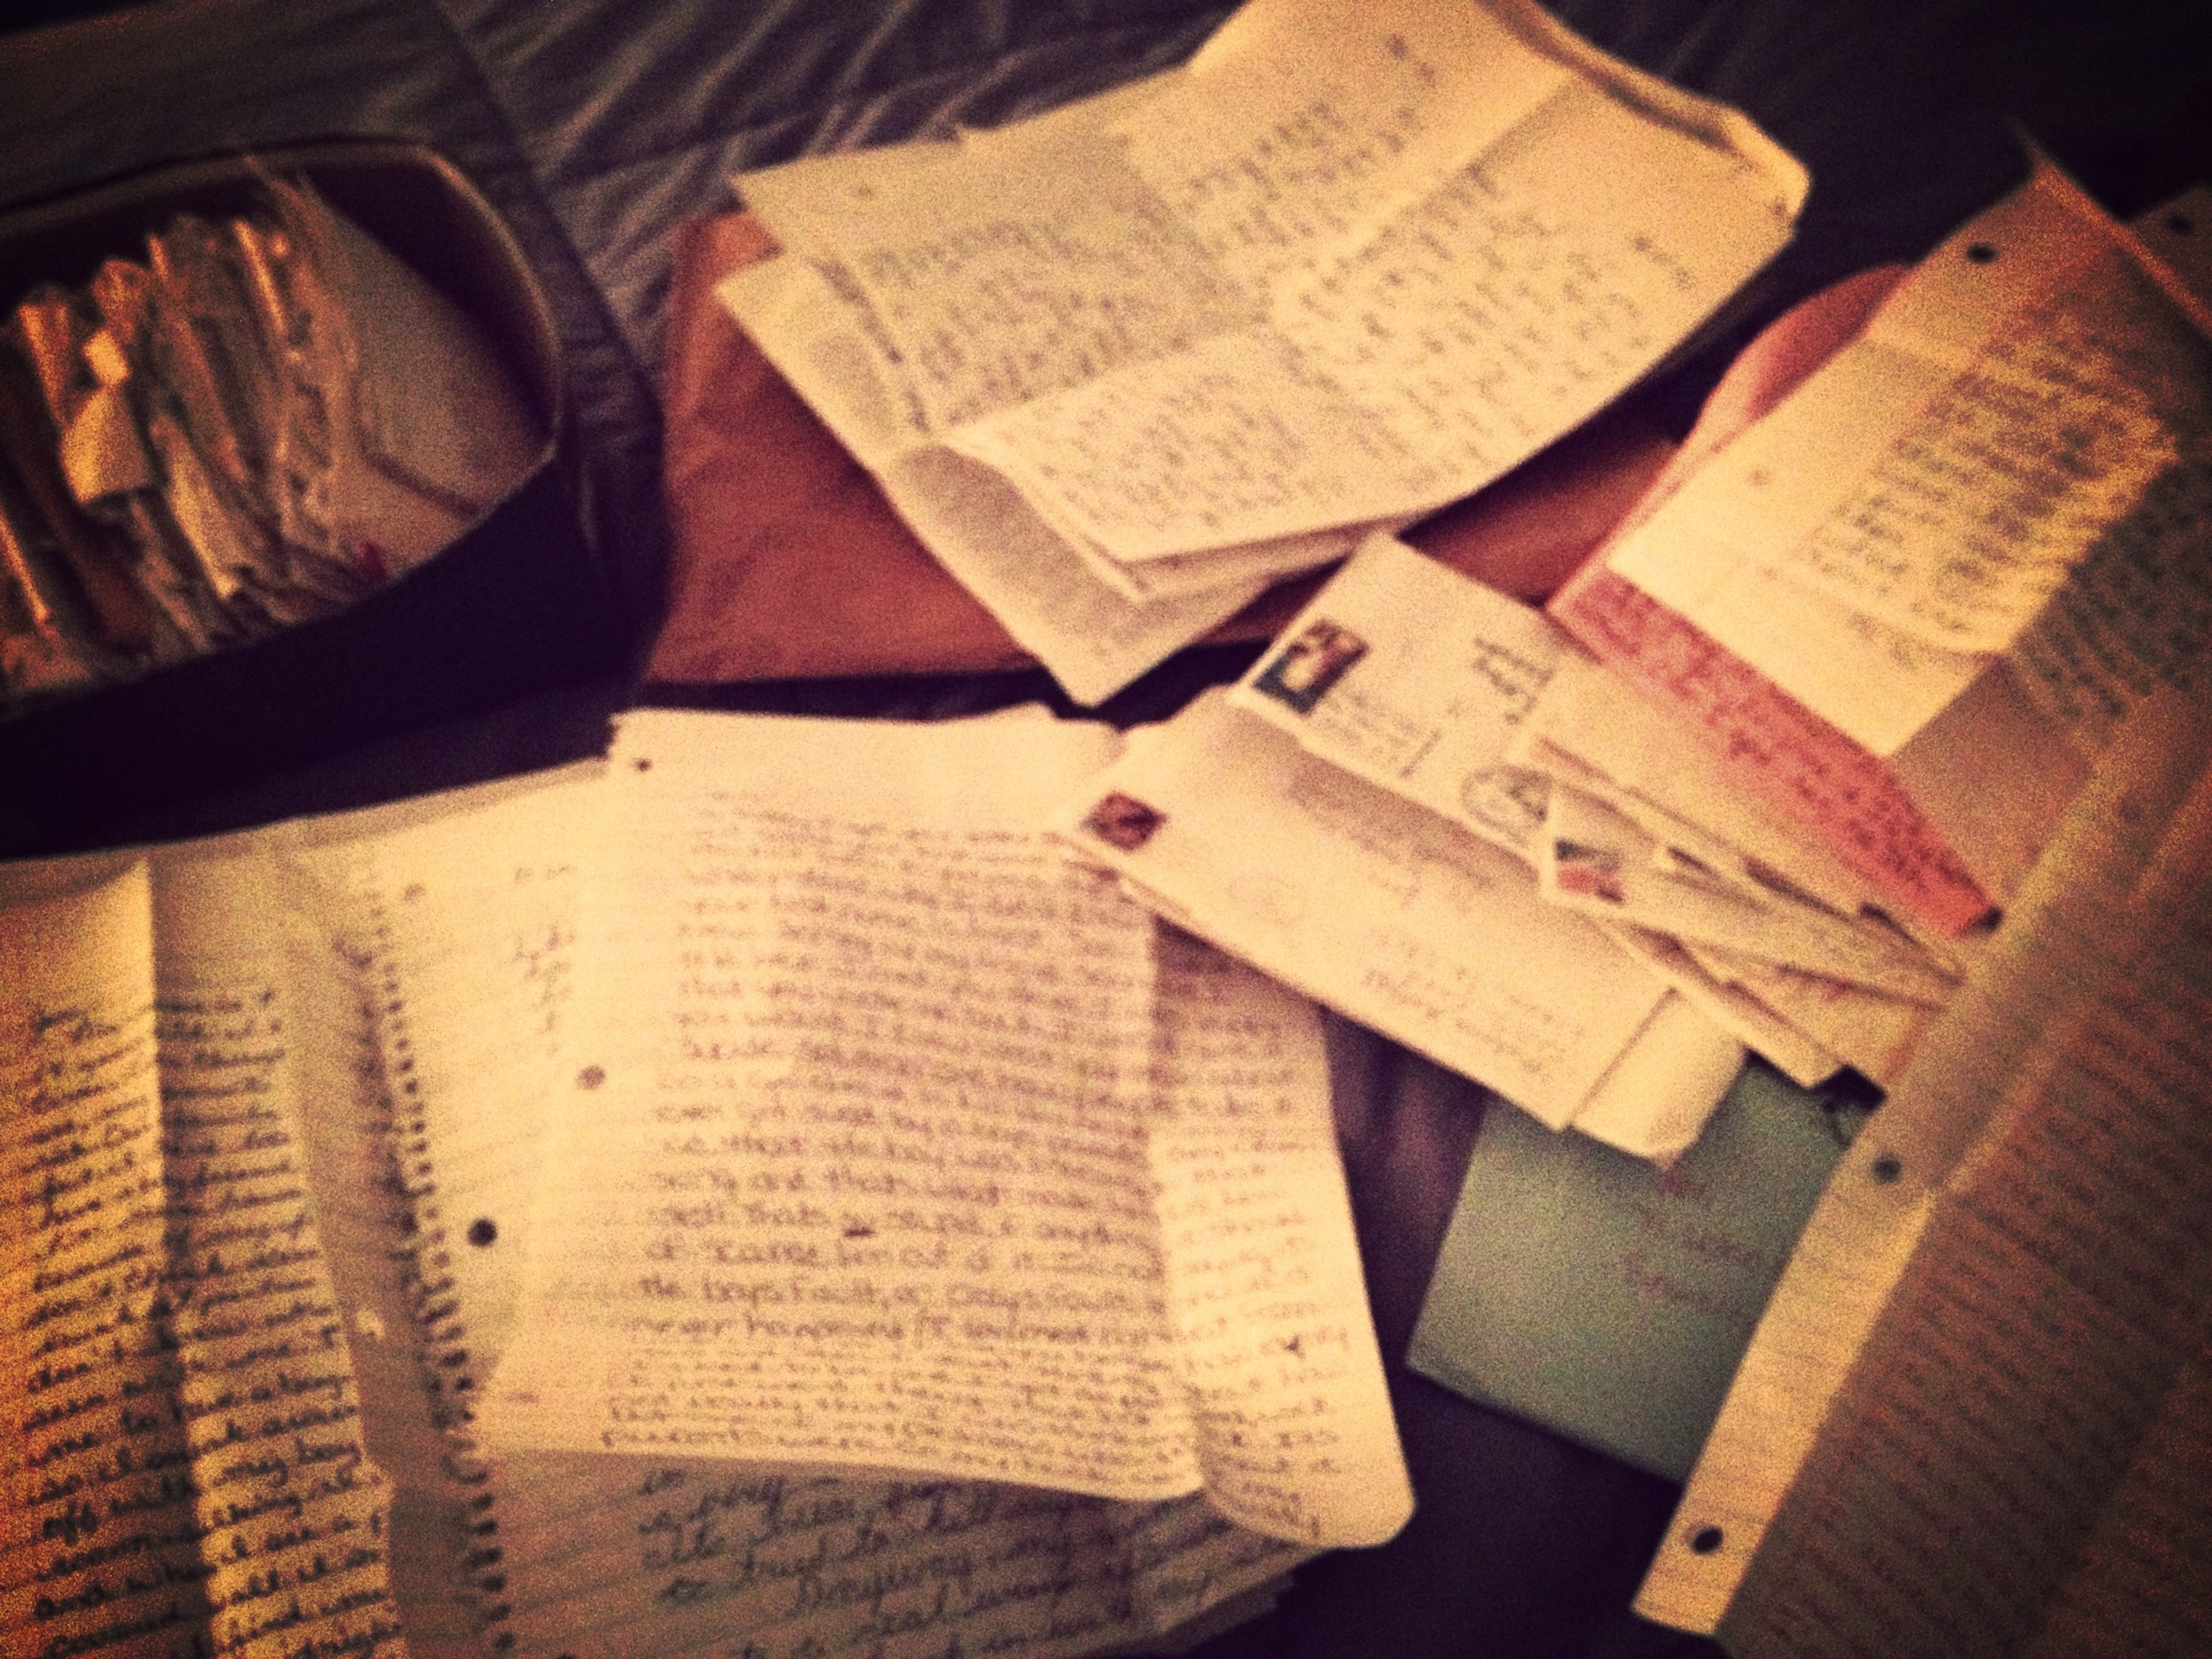 countless letters from suicidal teens (remind me to tell you the story about an angsty letter i wrote that was published in Rock Scene magazine in the late 80s).